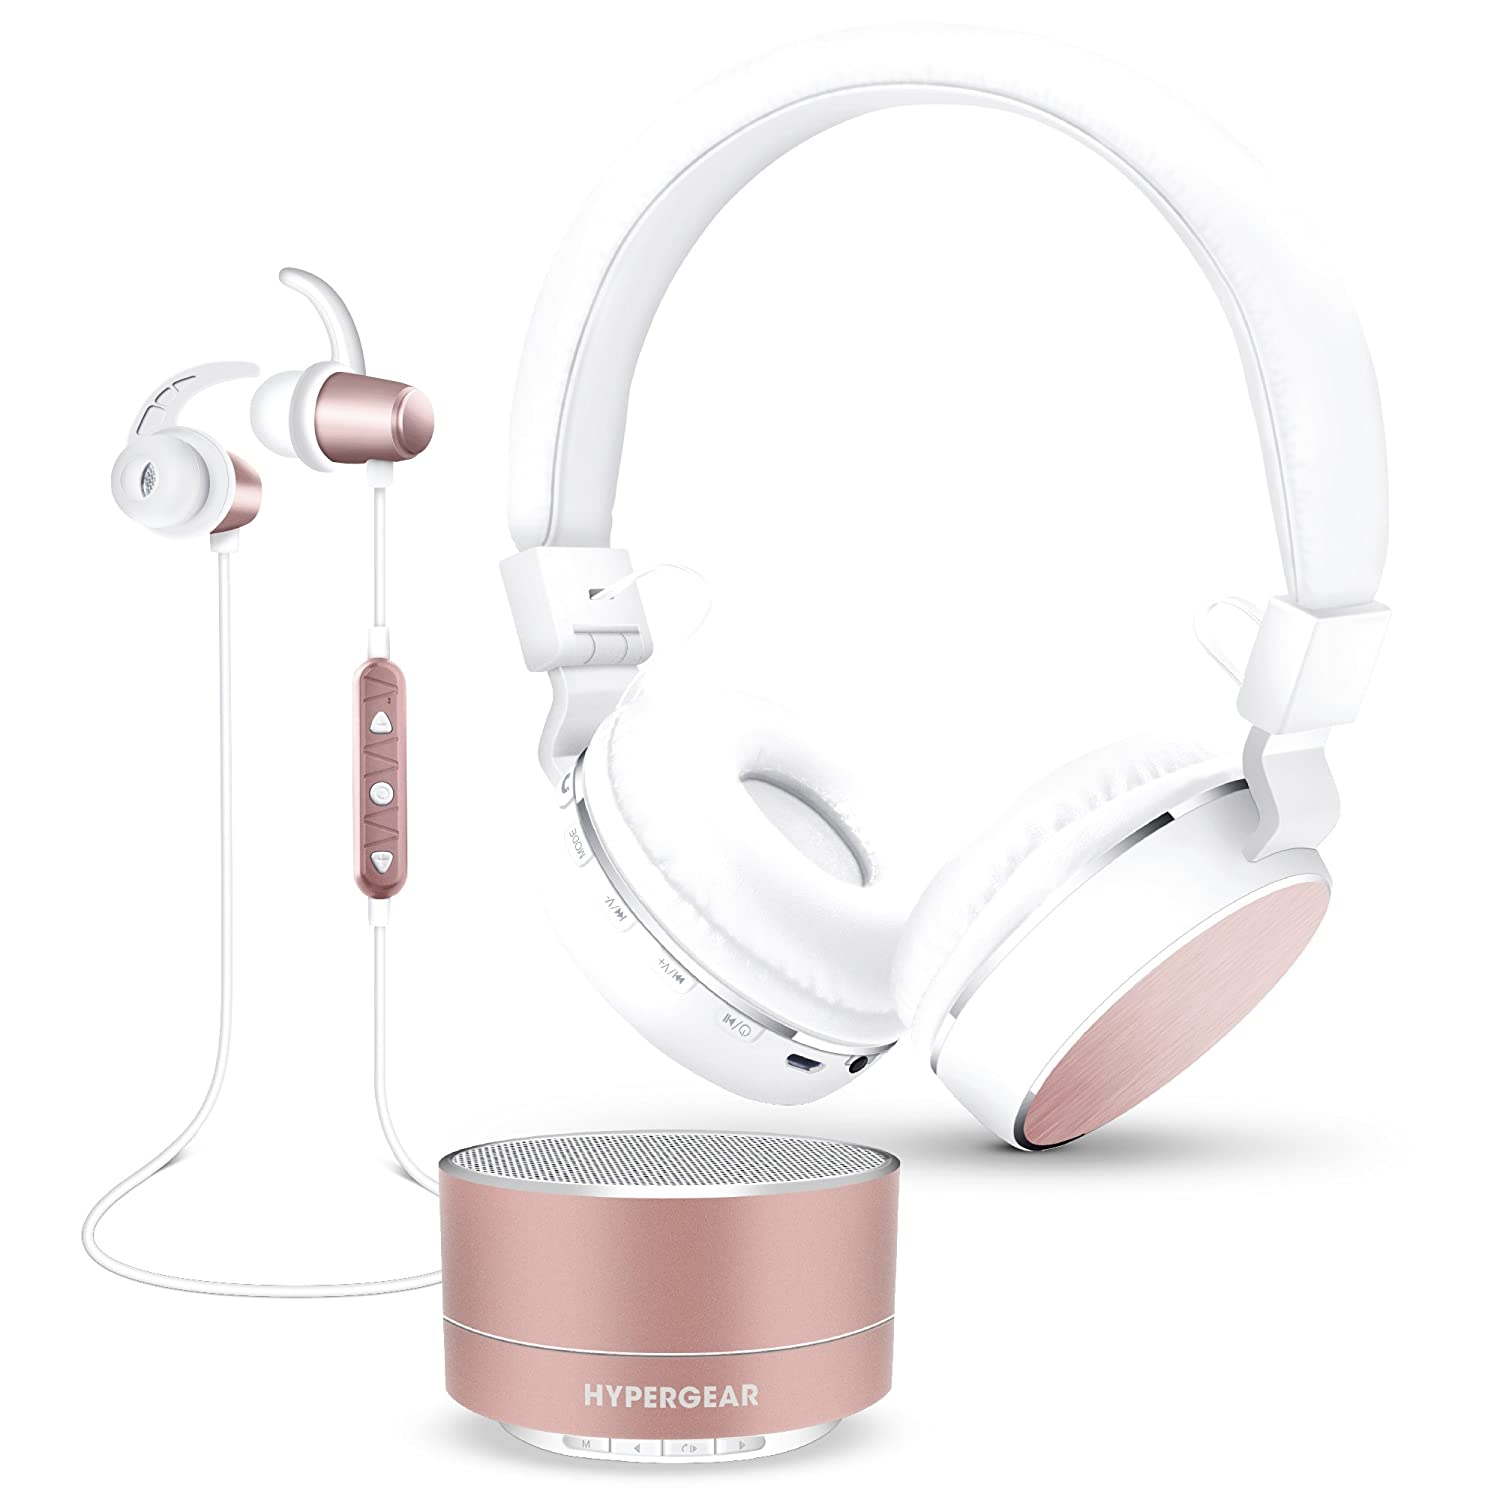 HyperGear Wireless Bluetooth 3 Piece Audio Gift Set. Take & Make Calls Directly from The On-Ear Headphones, Sport Stereo Earbuds or Portable Speaker. for iPhone X/8/8Plus, Samsung S9/Note8 & More